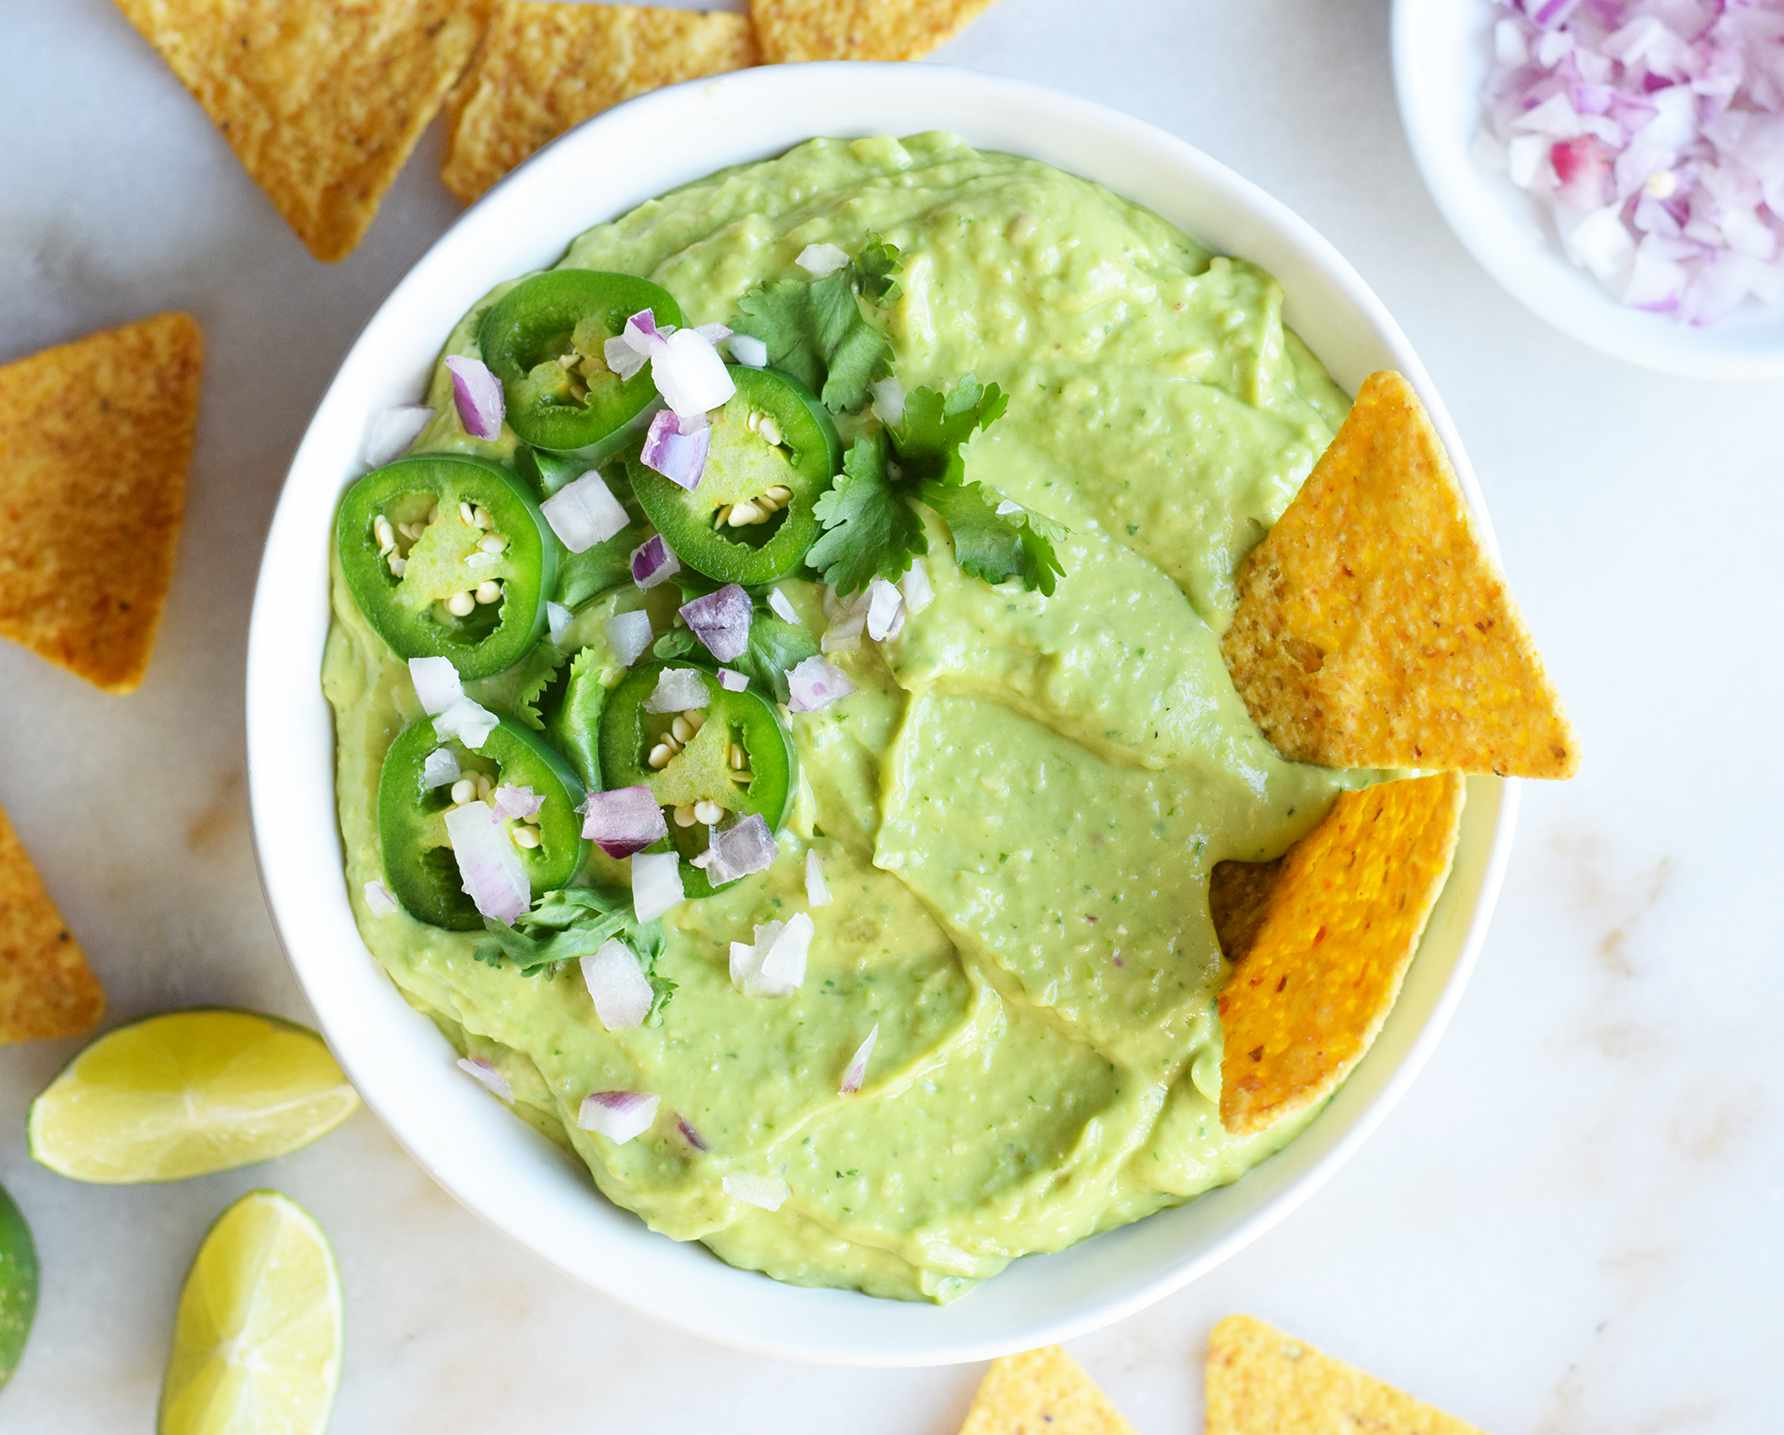 guacamole salsa in a bowl with chips